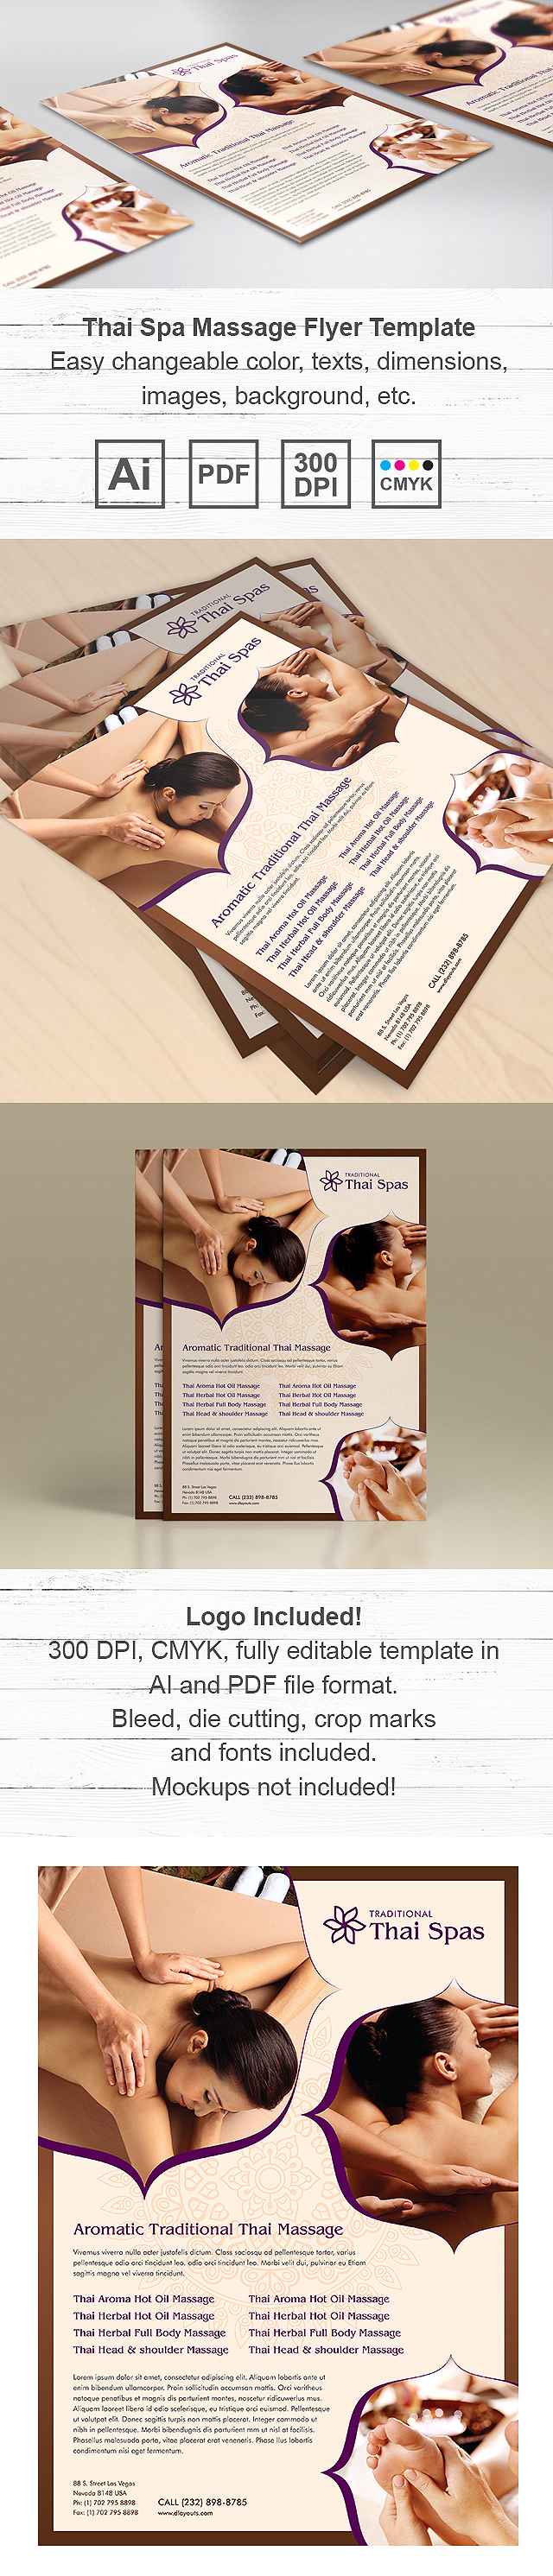 Thai Spa Massage Flyer Template